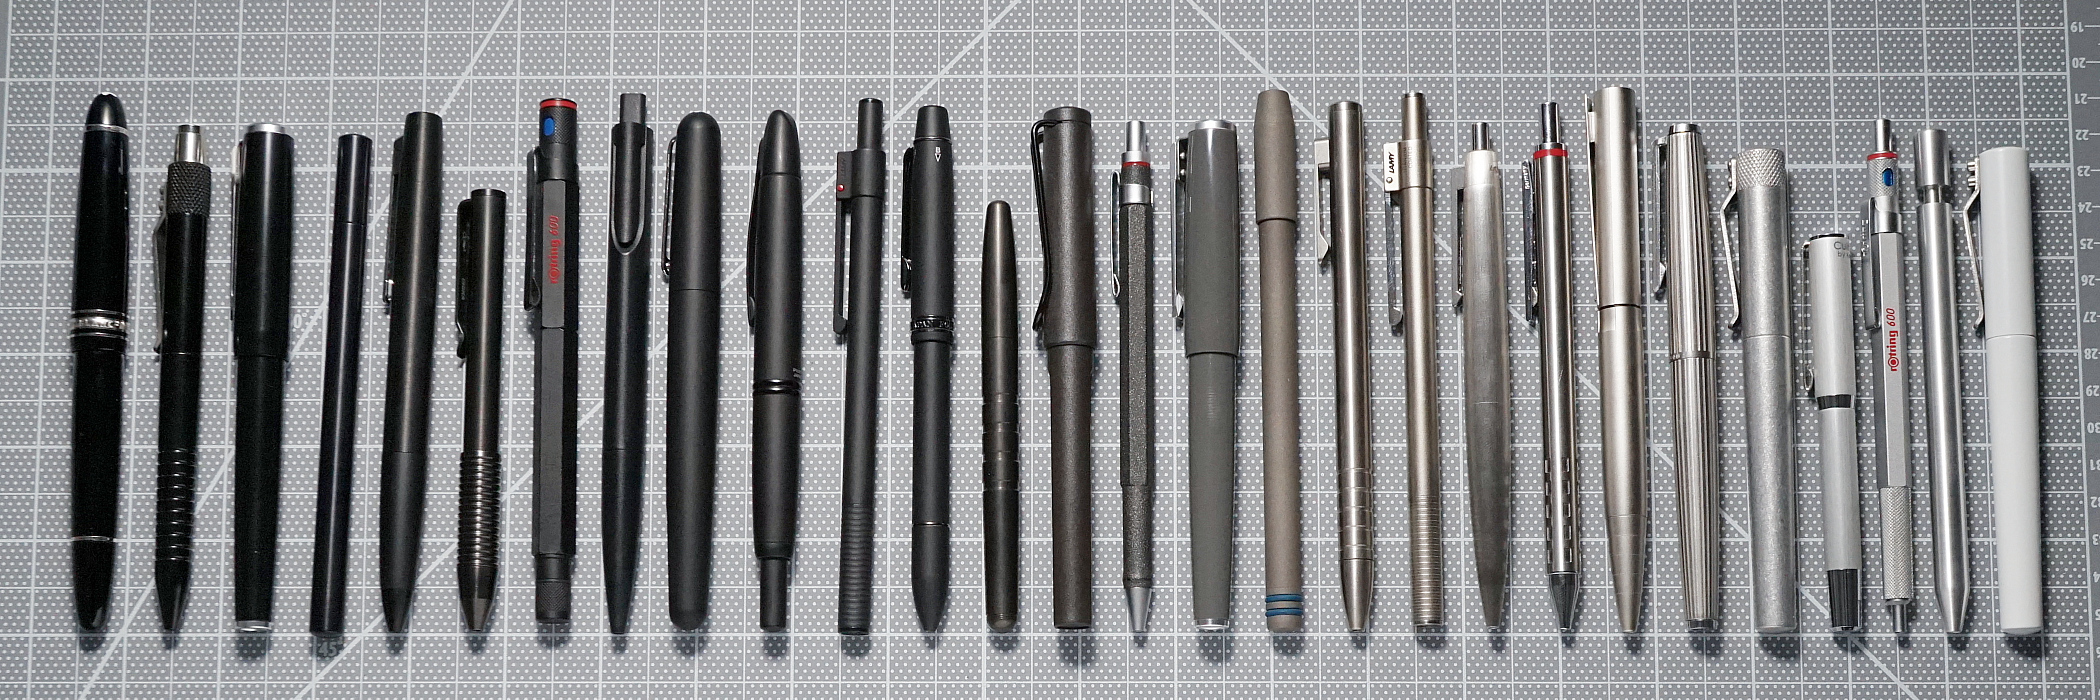 Gray Scale Pen Panorama.png